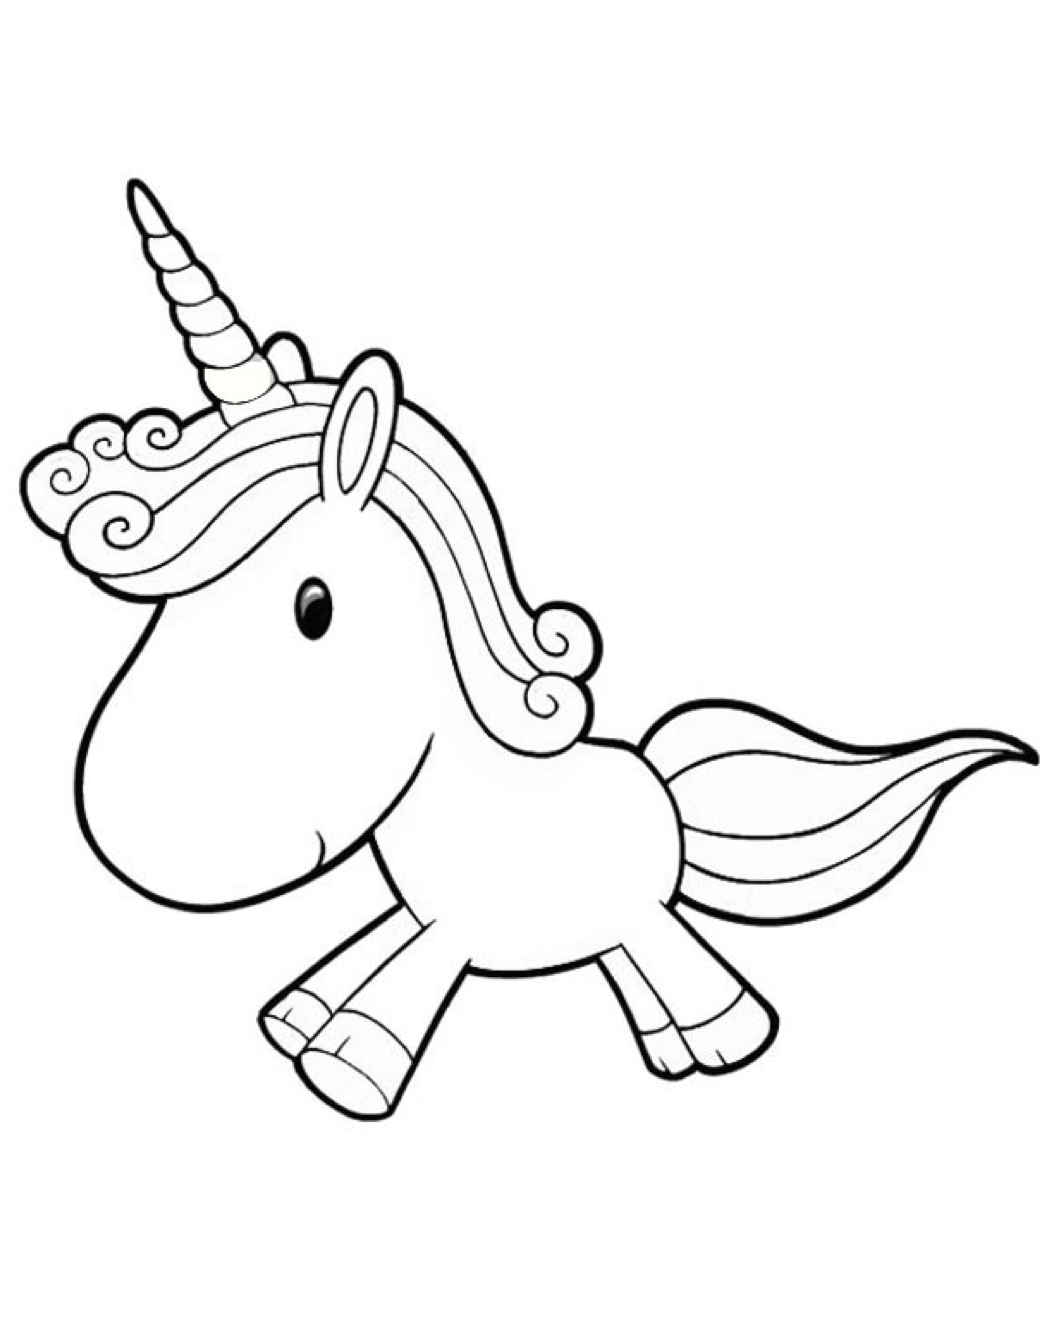 1040x1344 Cartoon Unicorn Coloring Page Coloring Book